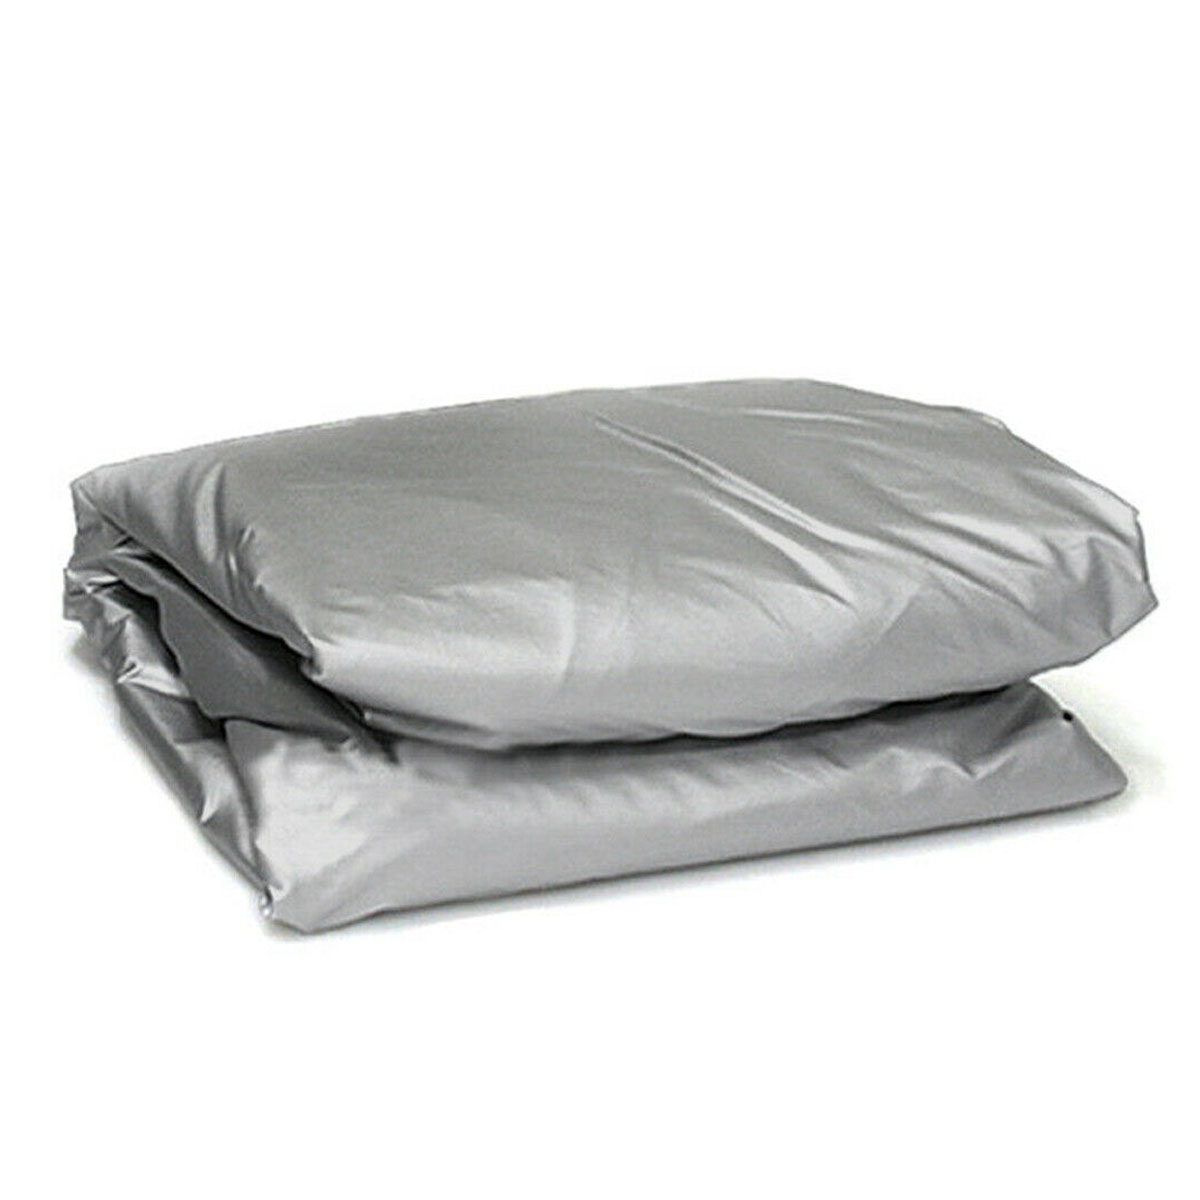 Full Car Road Cover Silver Waterproof Rain Snow Heat Dust Resistant Protection Non-woven Polypropylene, image